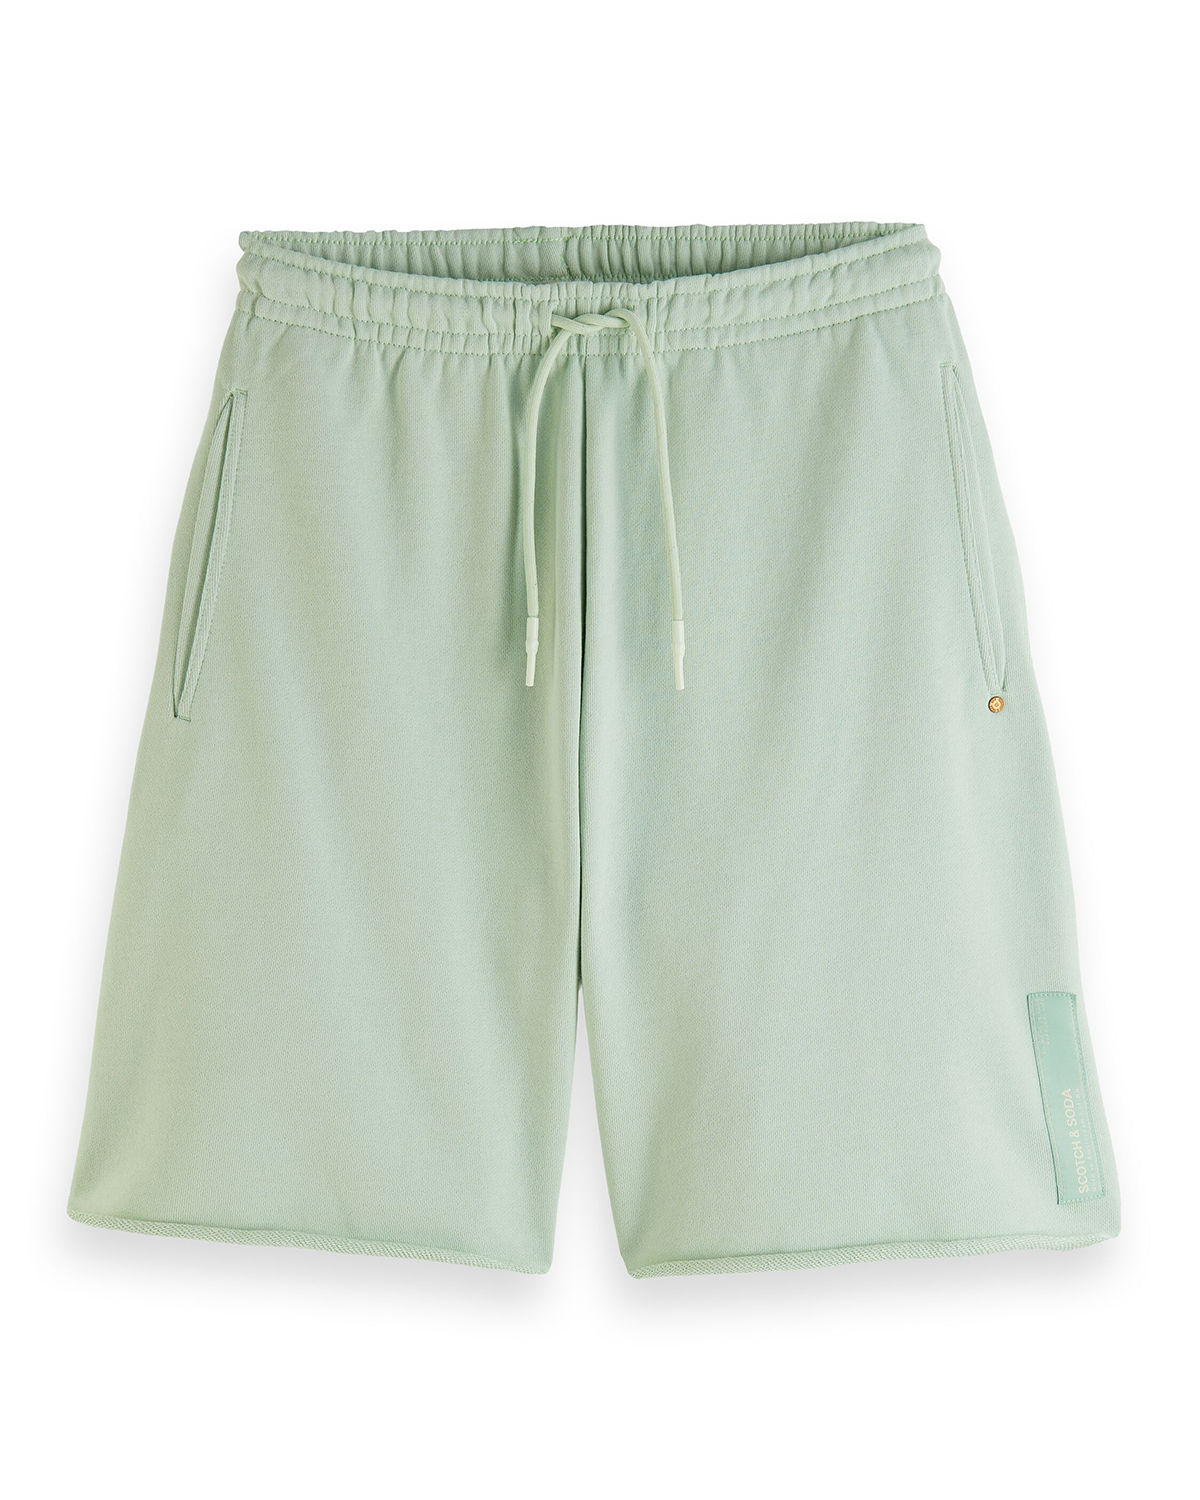 Scotch & Soda MEN'S ORGANIC COTTON FELPA SHORTS